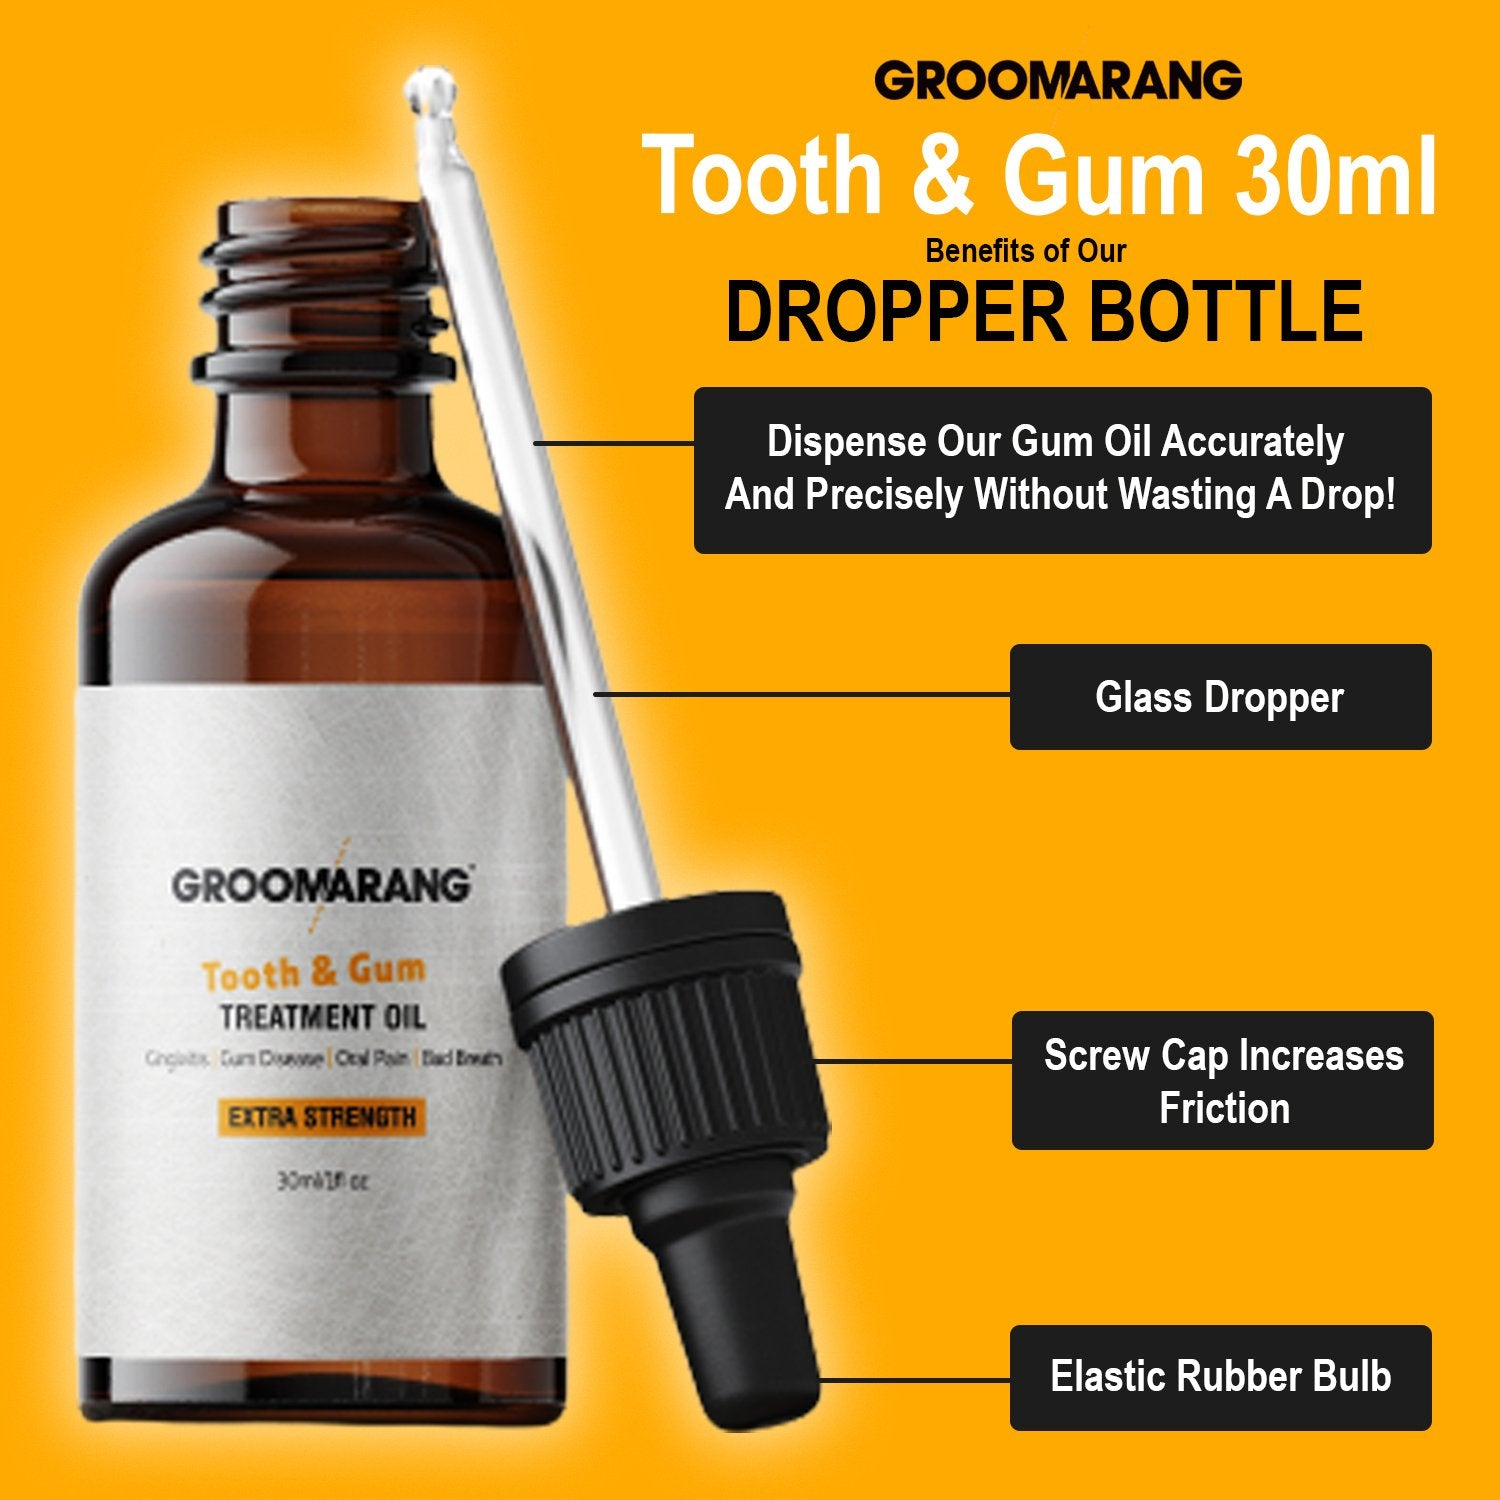 Groomarang Extra Strength Tooth & Gum Treatment Oil 30ml, Mouthwash - Image 3